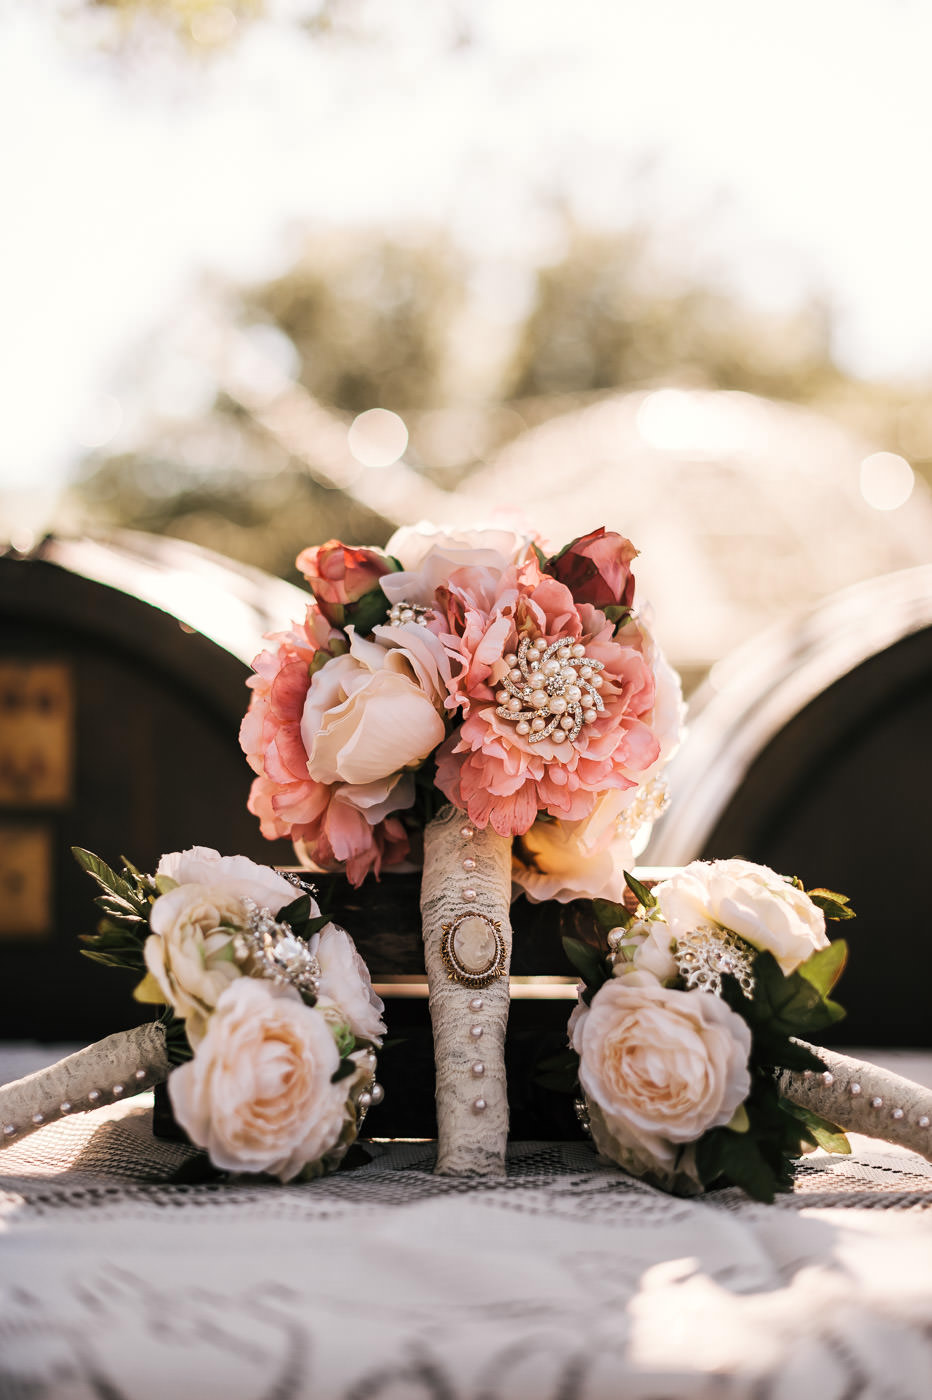 gorgeous pink and white bouquet with pearl and other vintage detials sits on a lace table cloth with the other bridesmaids flowers